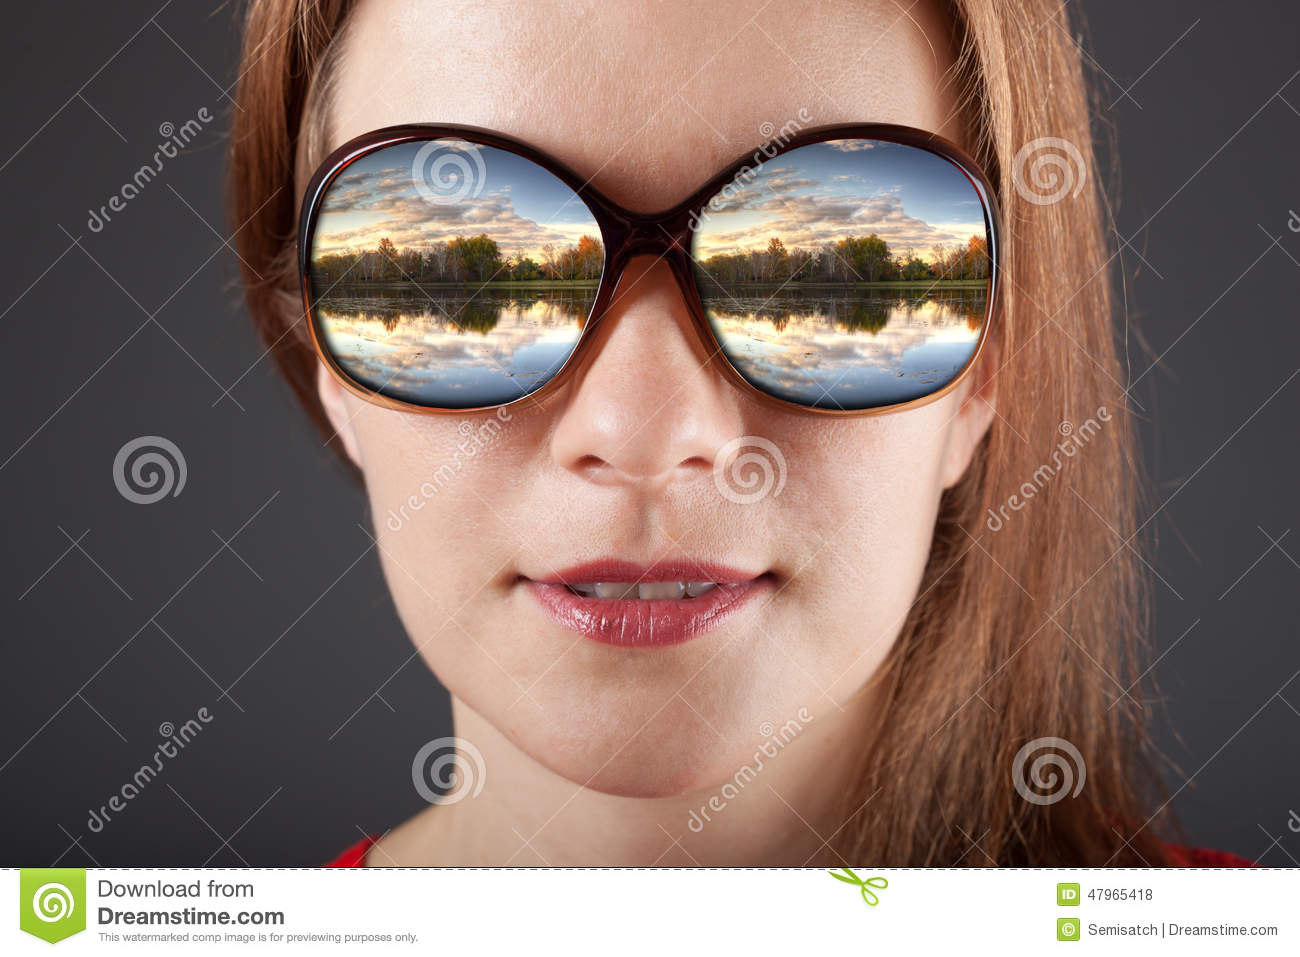 401cab7072 Amazed Girl In Sunglasses With Reflection Stock Photo - Image of ...